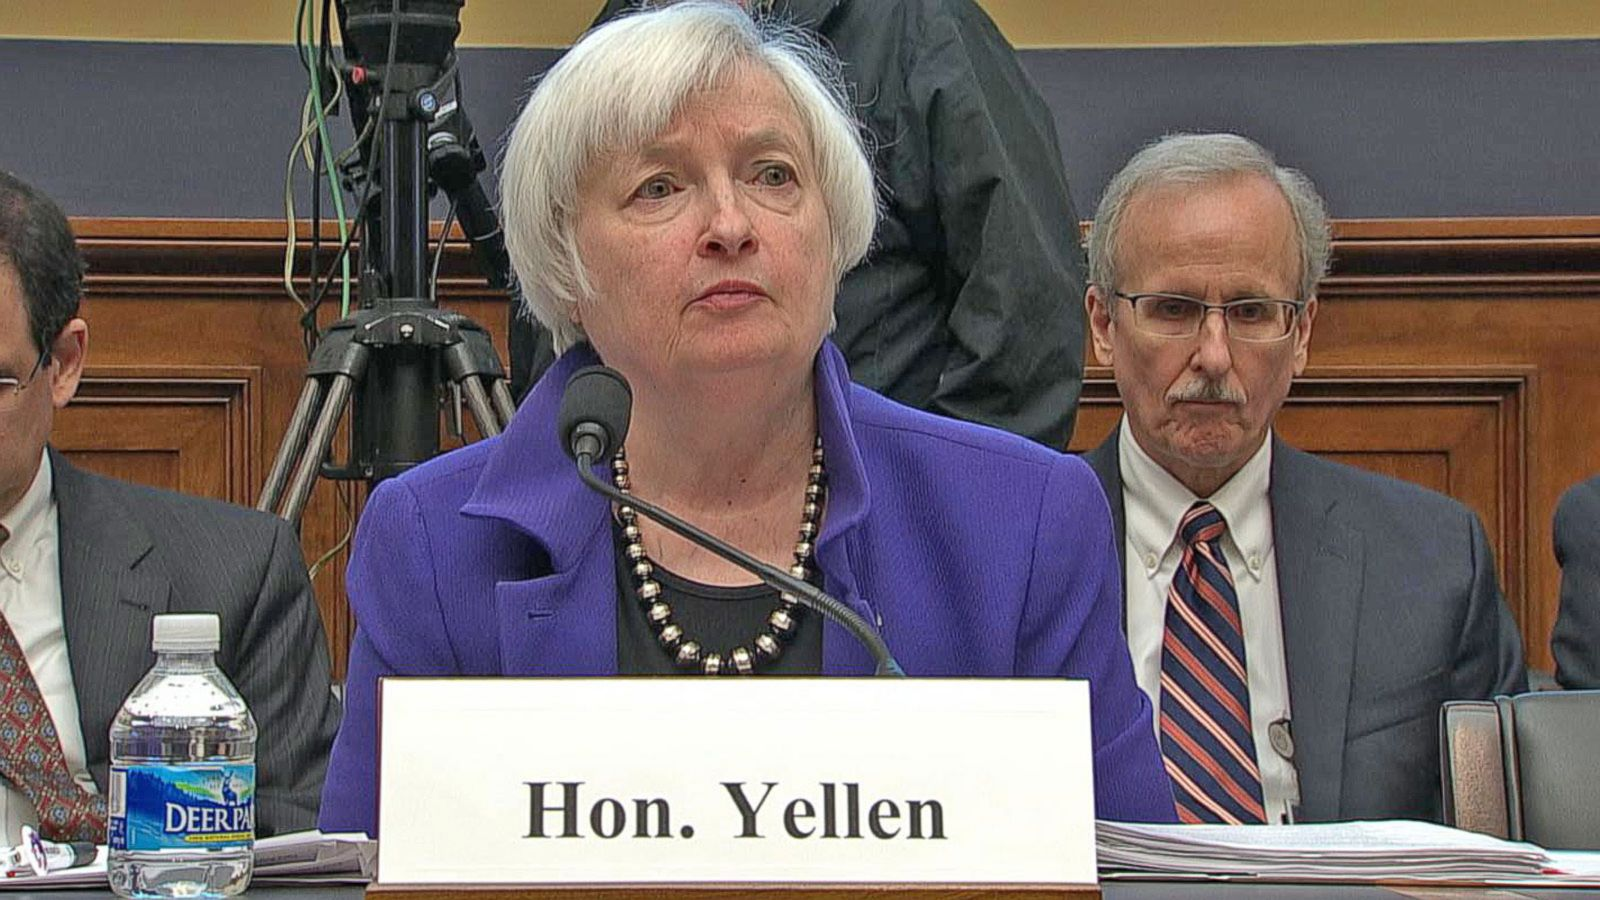 VIDEO: Congressman Asks Fed Chairwoman if Wells Fargo Should Be Broken Up